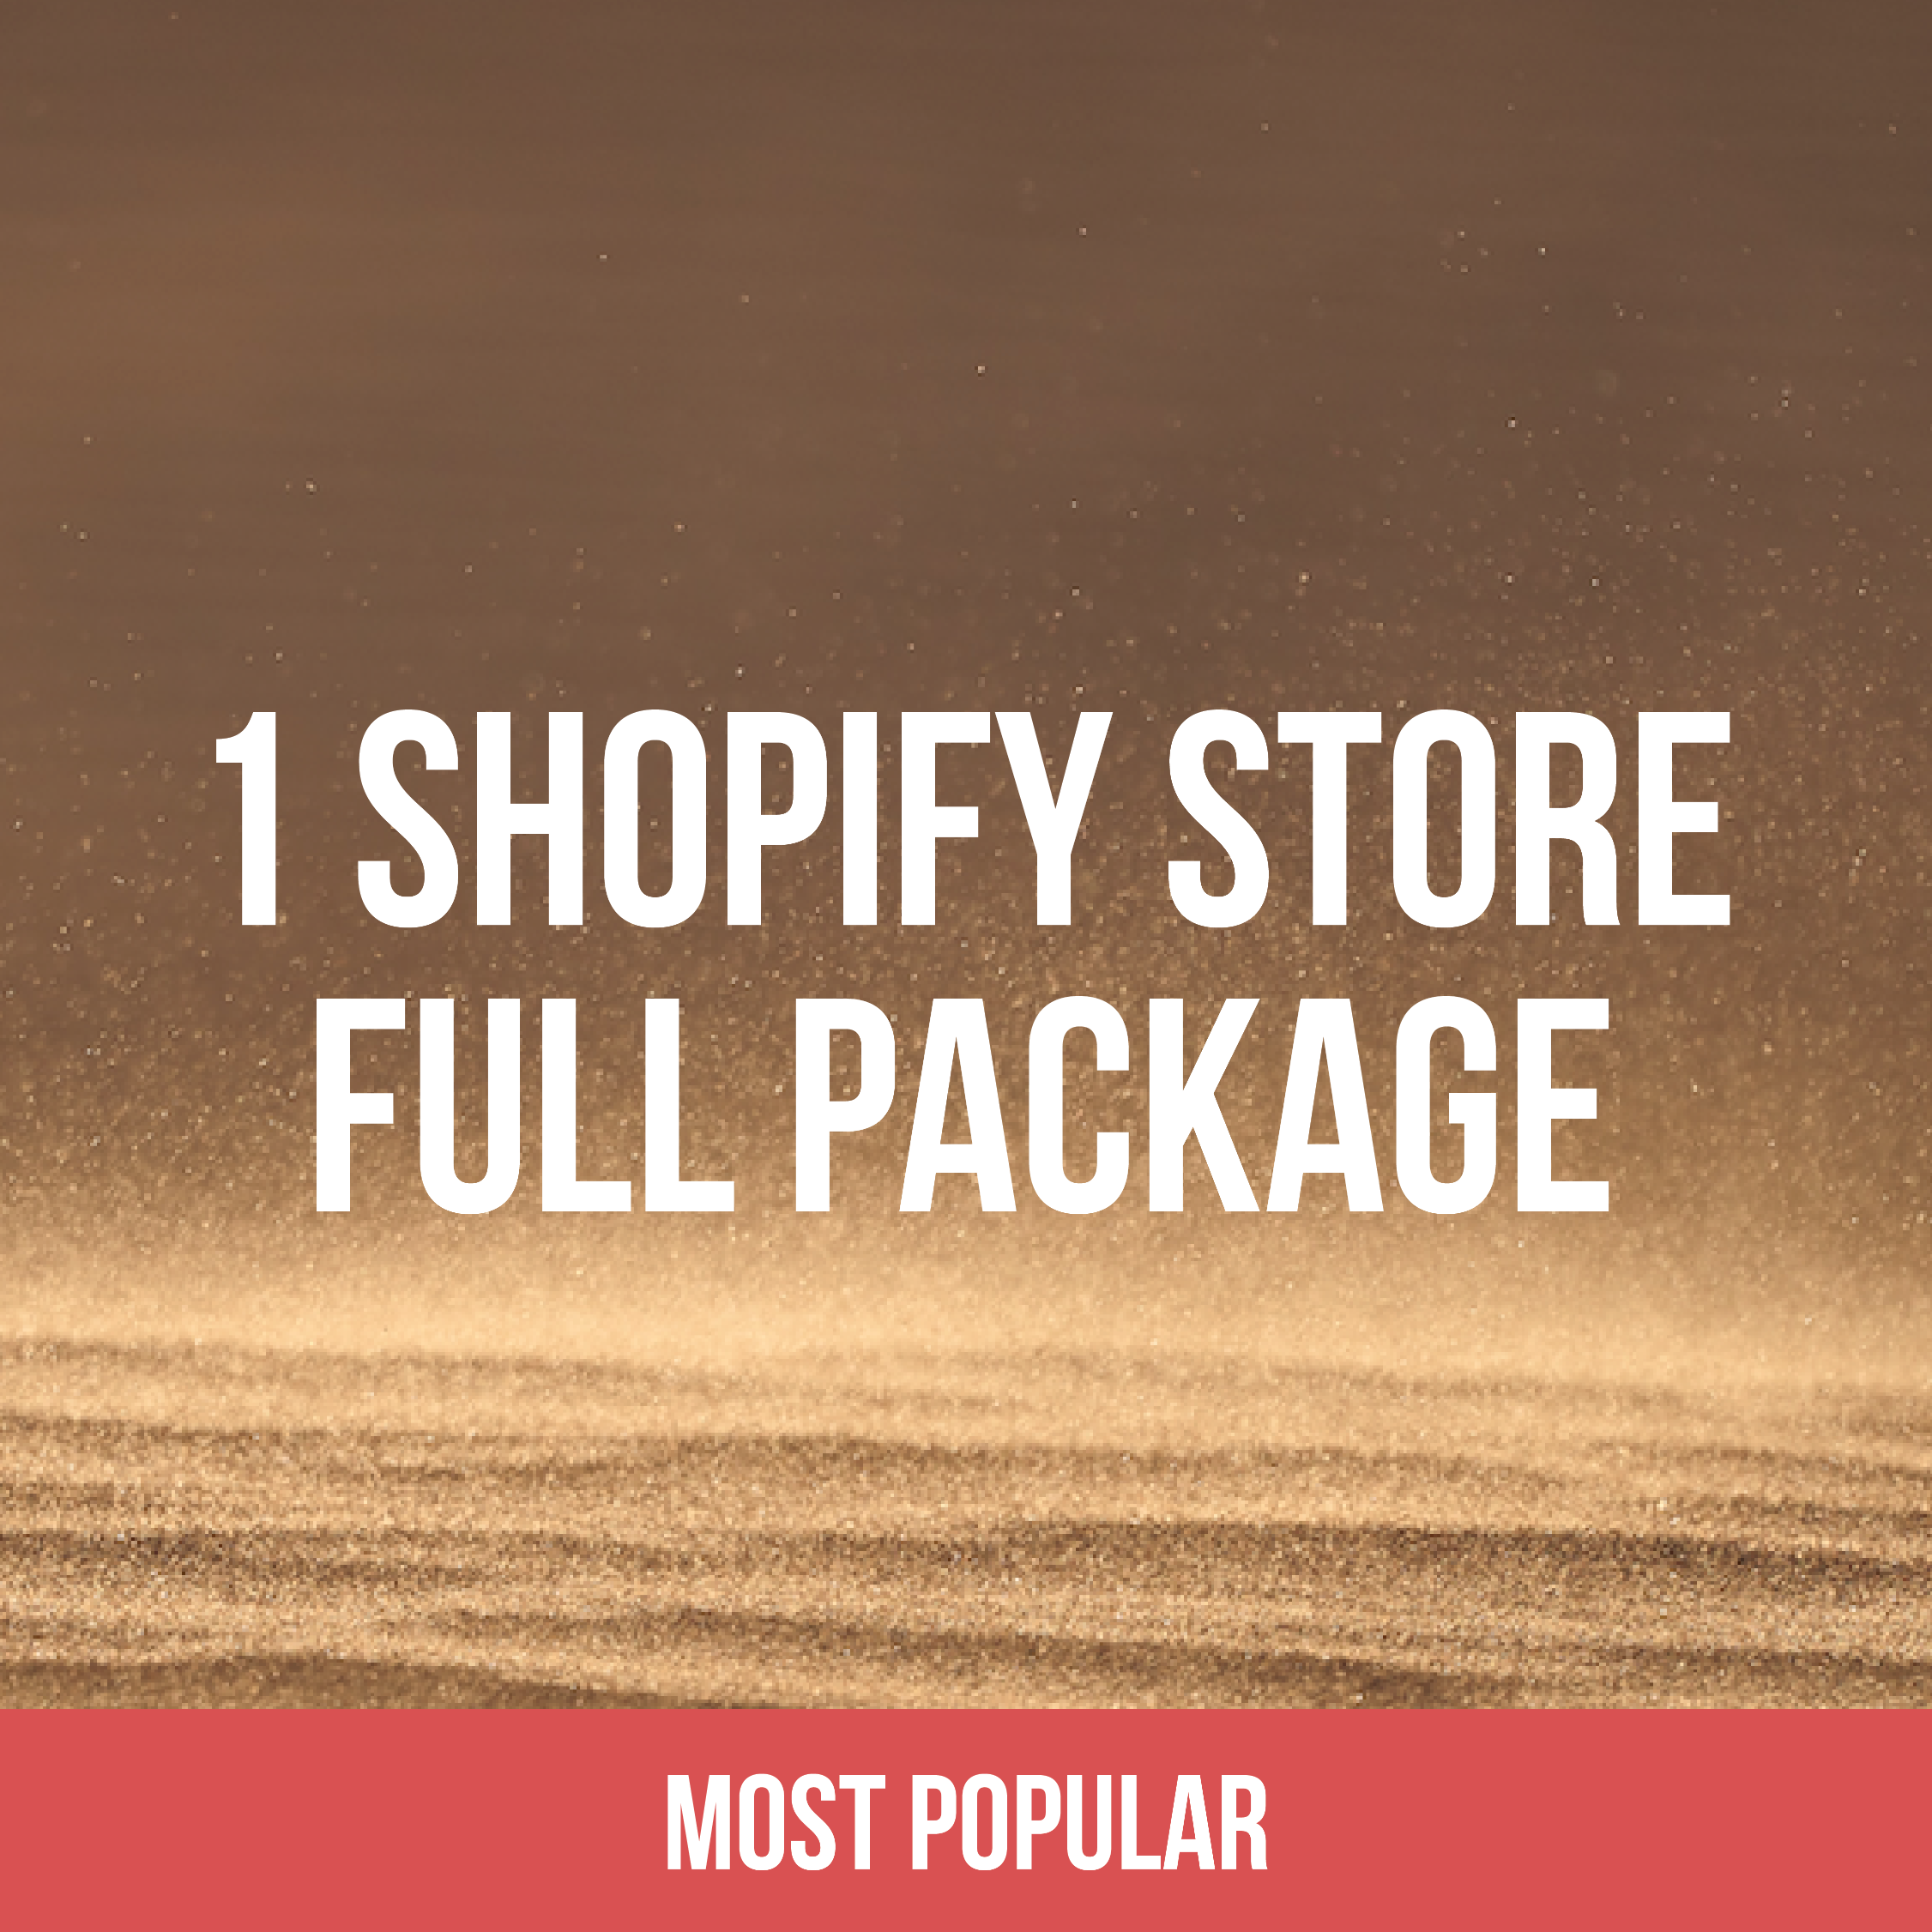 1 SHOPIFY STORE